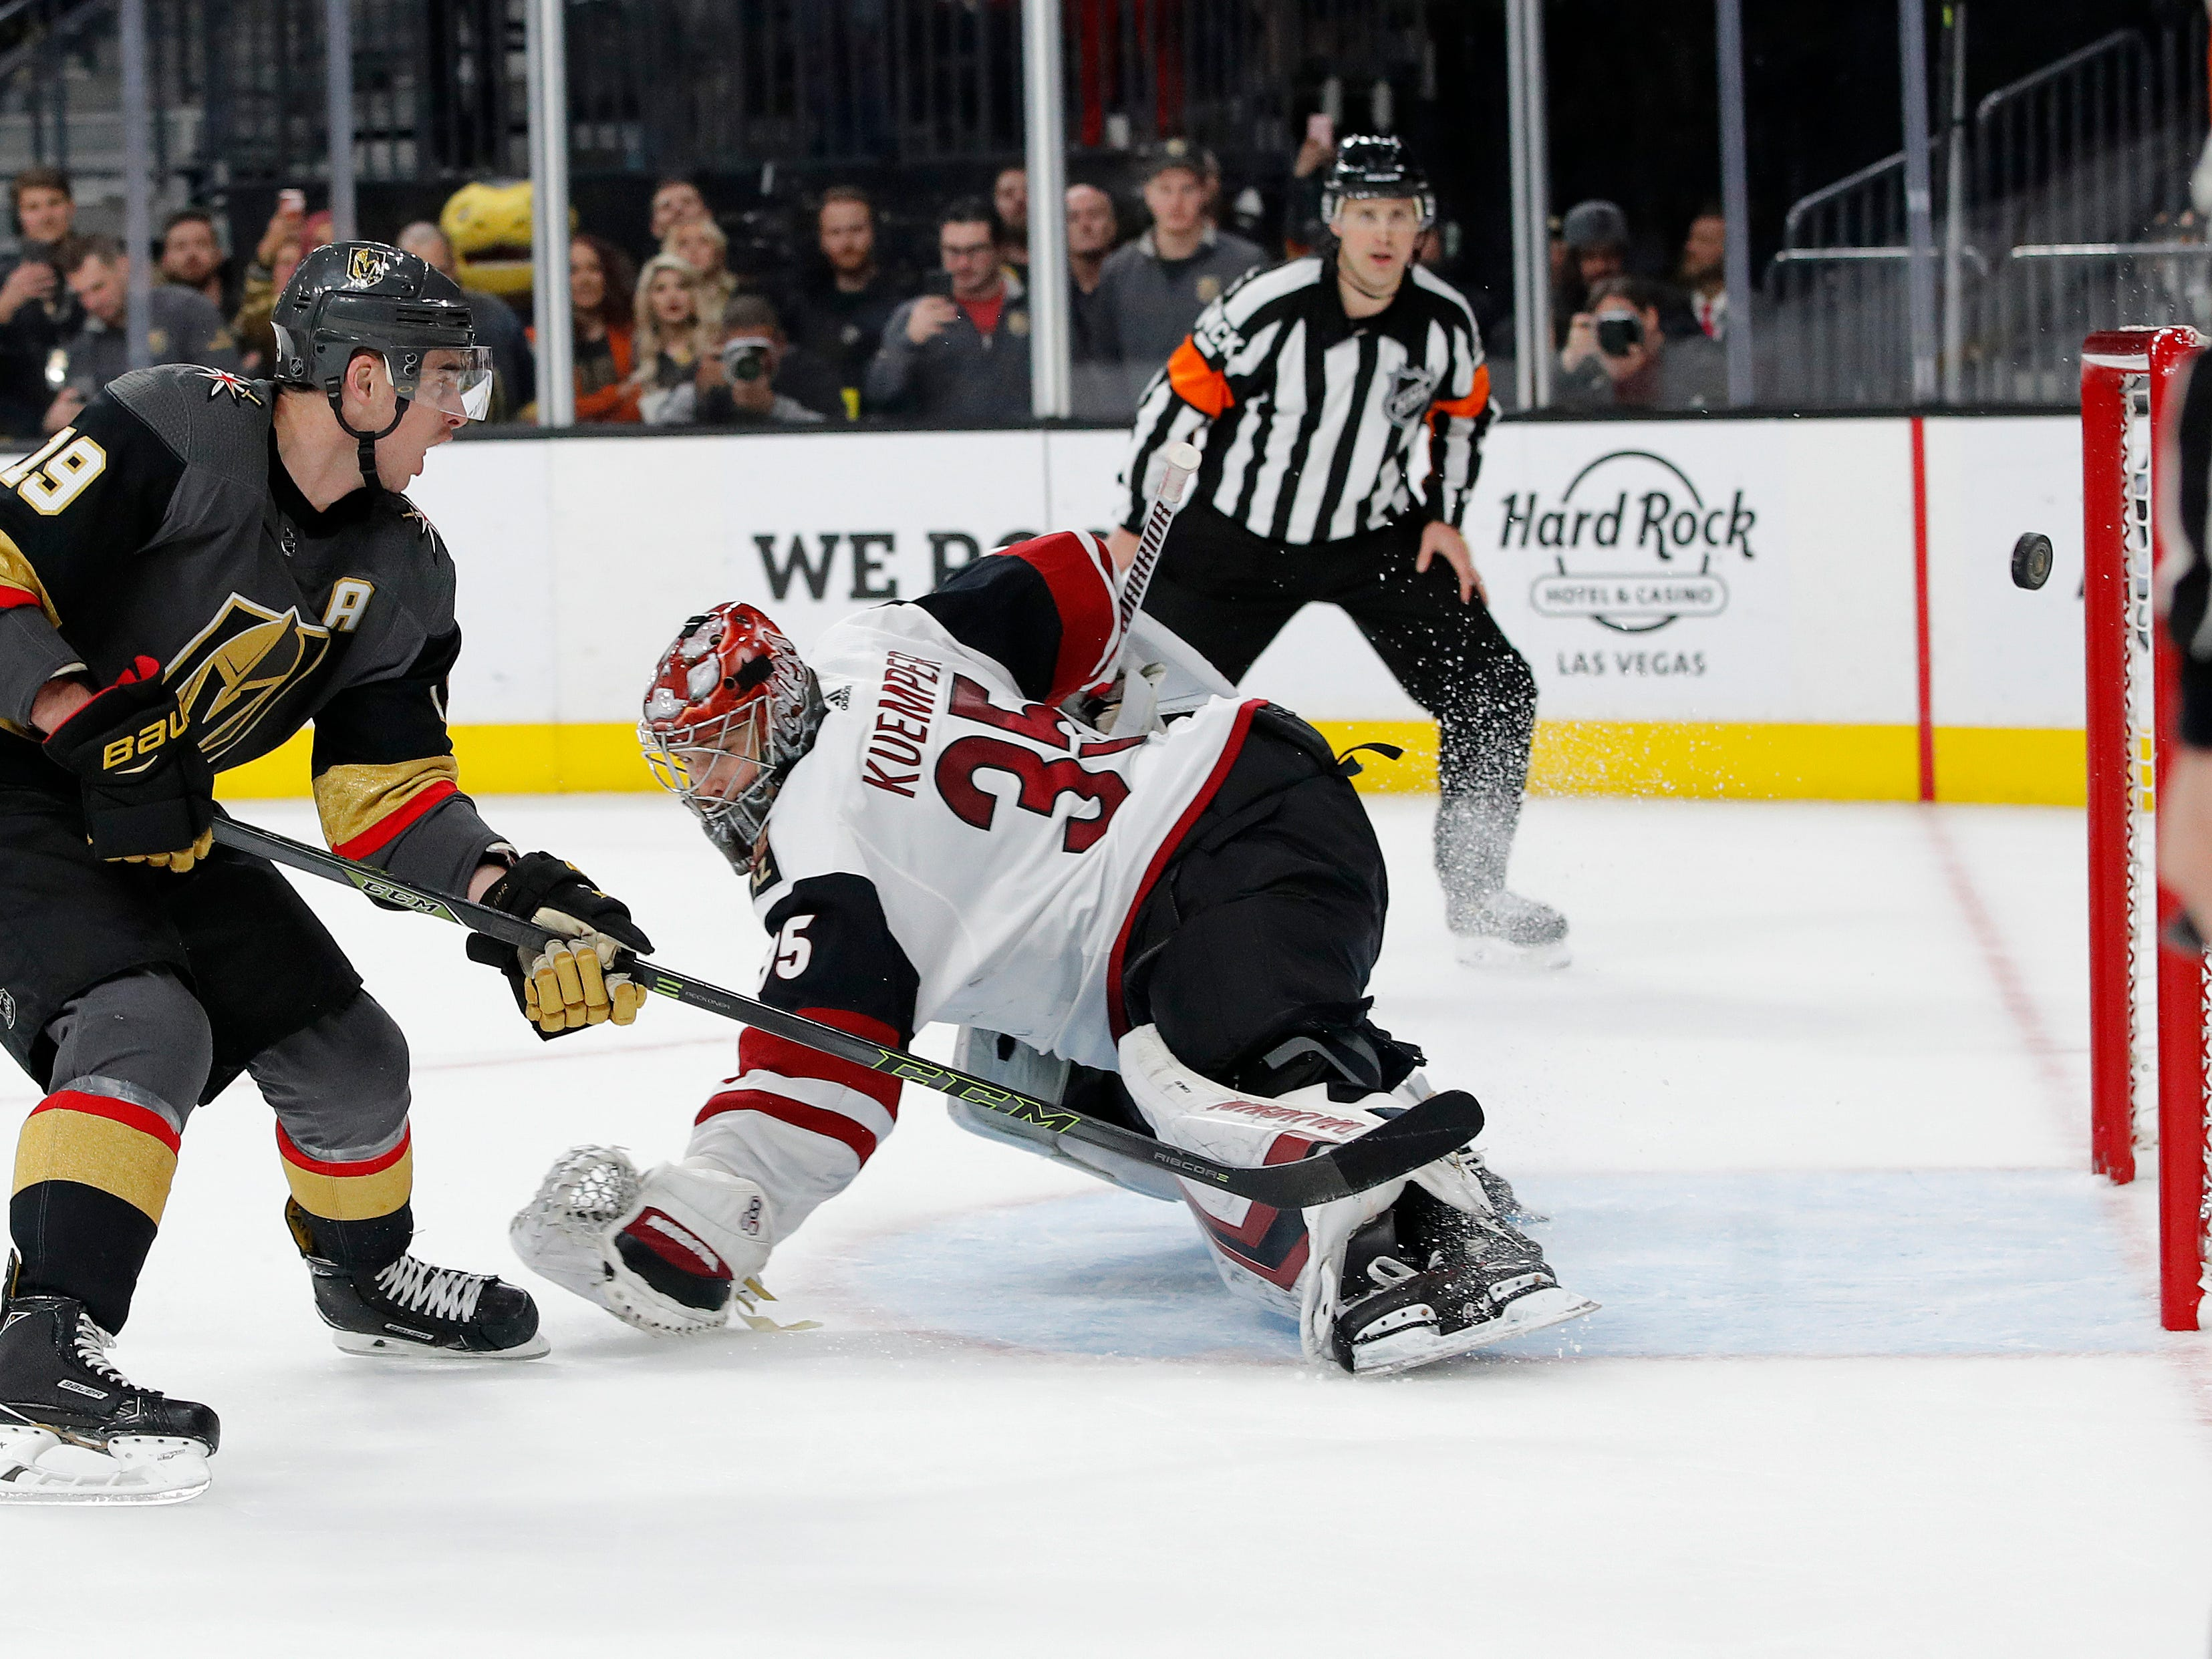 Vegas Golden Knights right wing Reilly Smith (19) misses a penalty shot against Arizona Coyotes goaltender Darcy Kuemper (35) during the second period of an NHL hockey game Tuesday, Feb. 12, 2019, in Las Vegas. (AP Photo/John Locher)